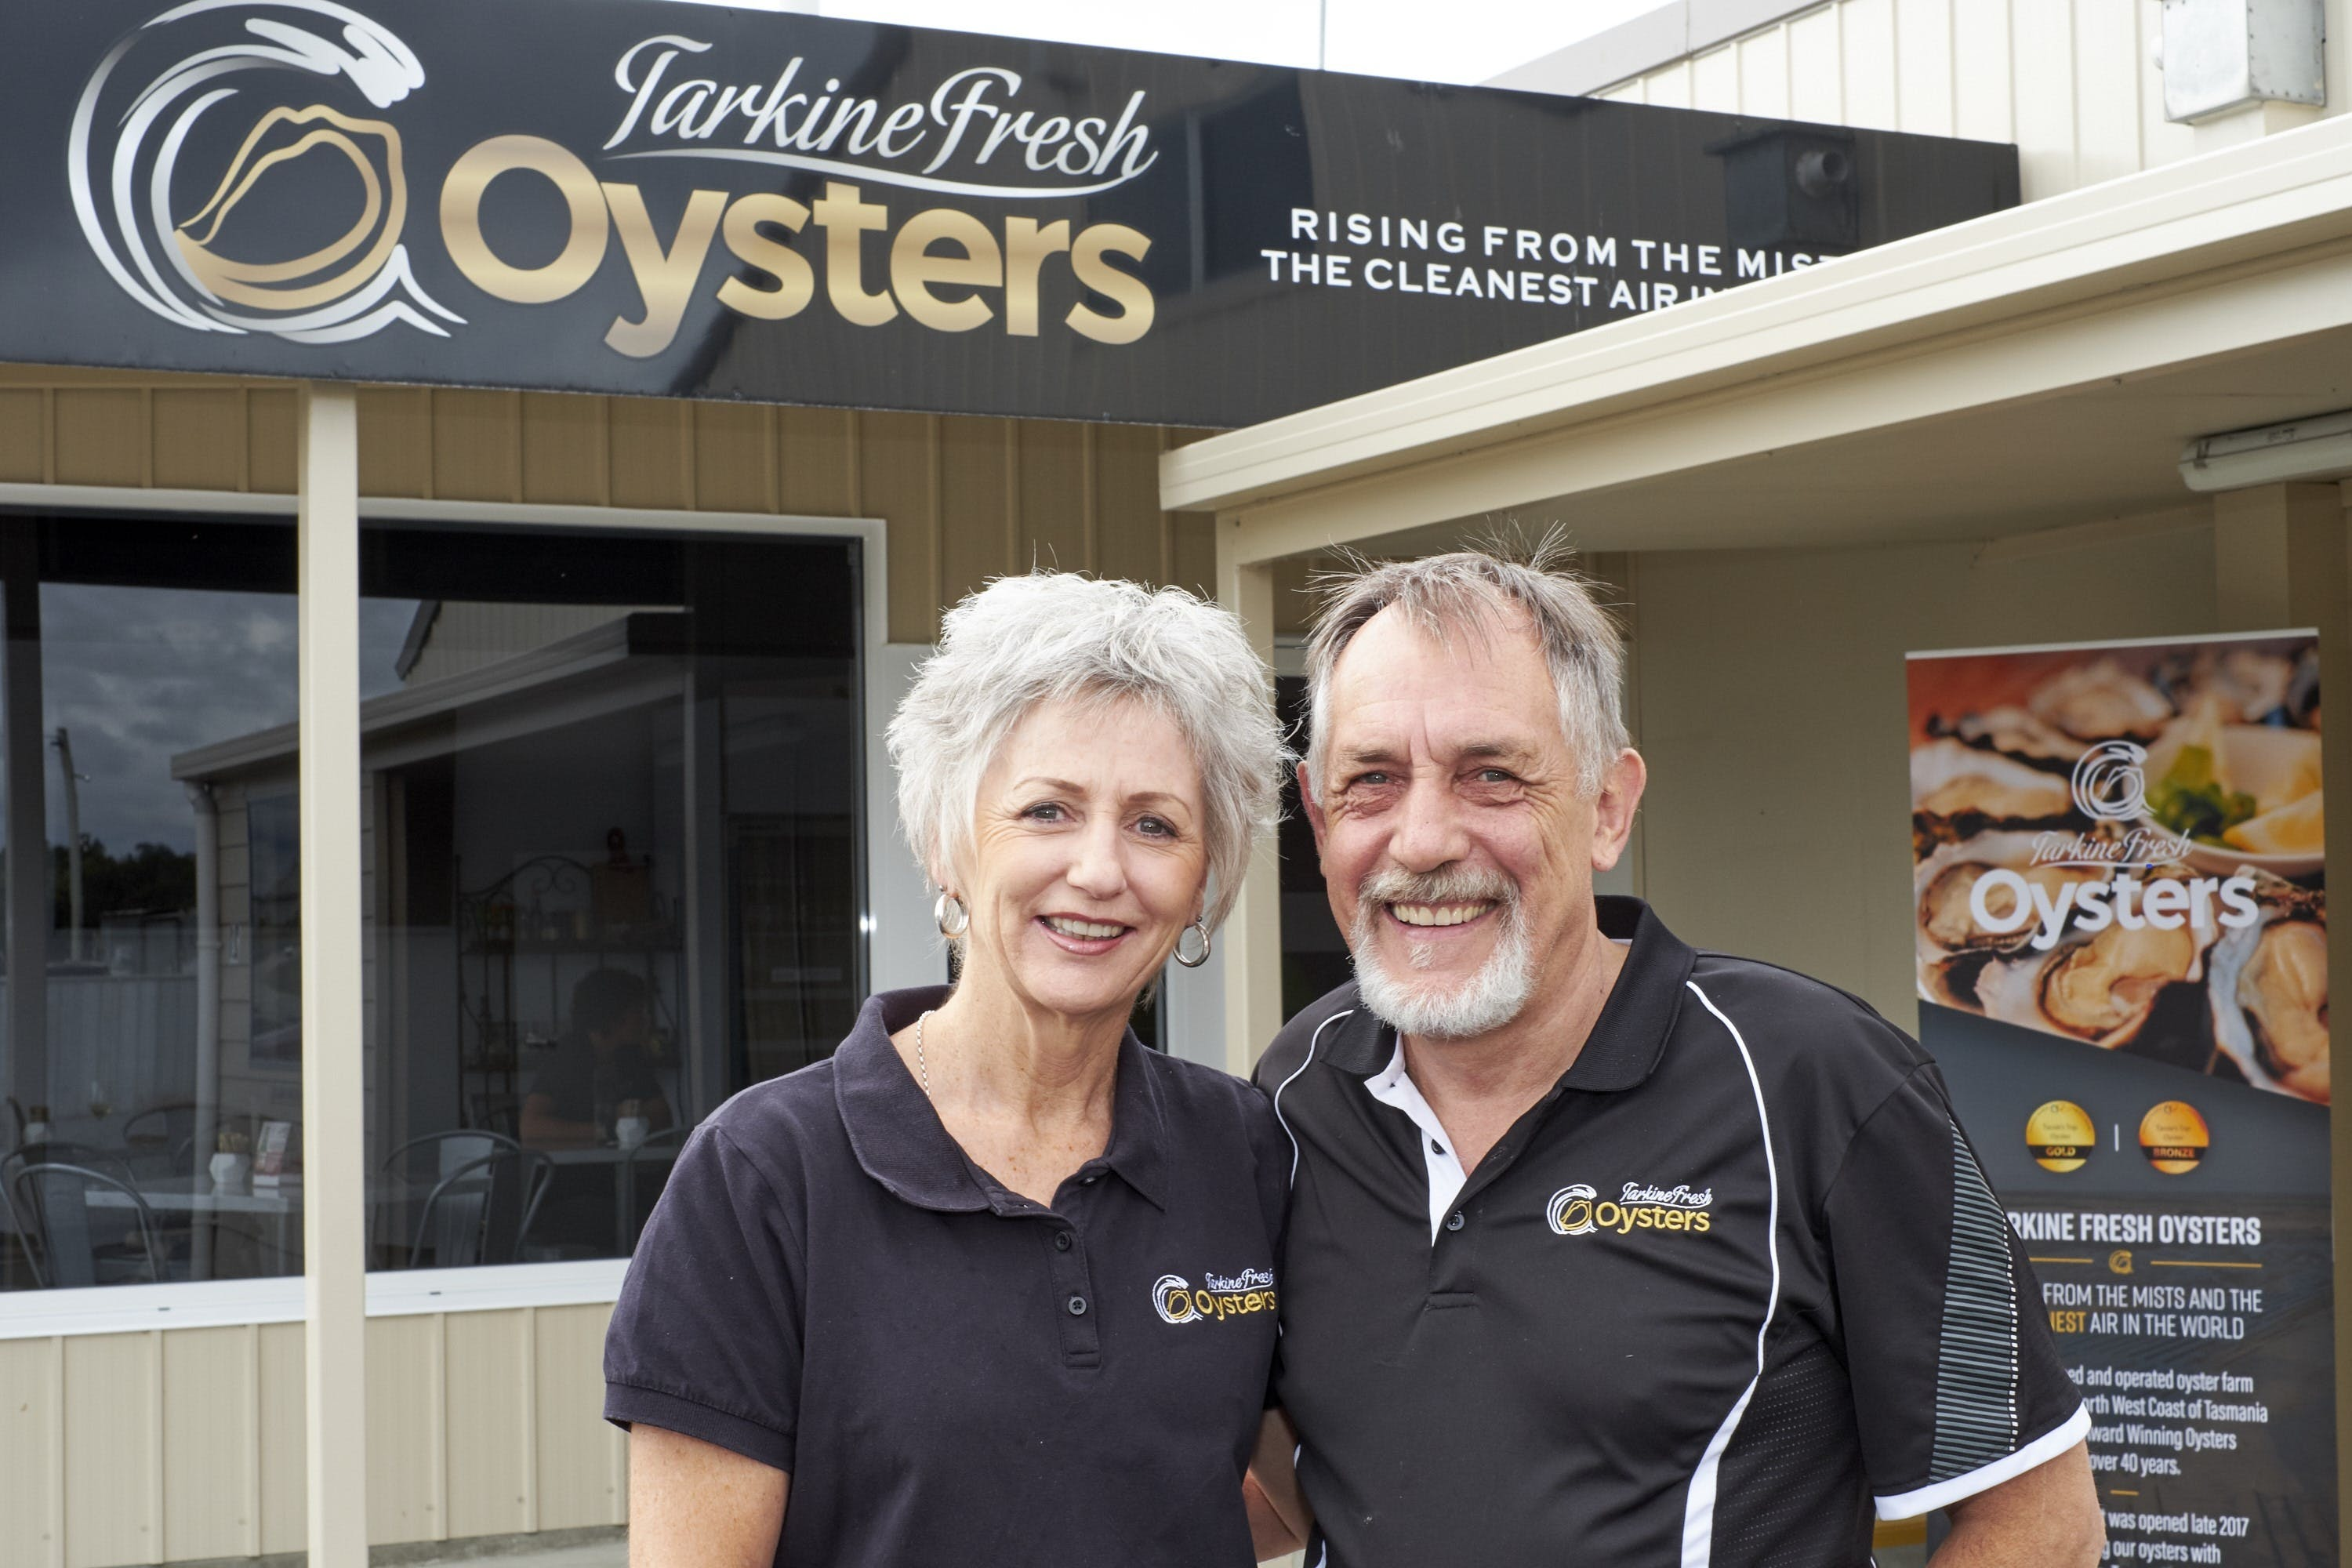 Tarkine Fresh Oysters - Pubs and Clubs